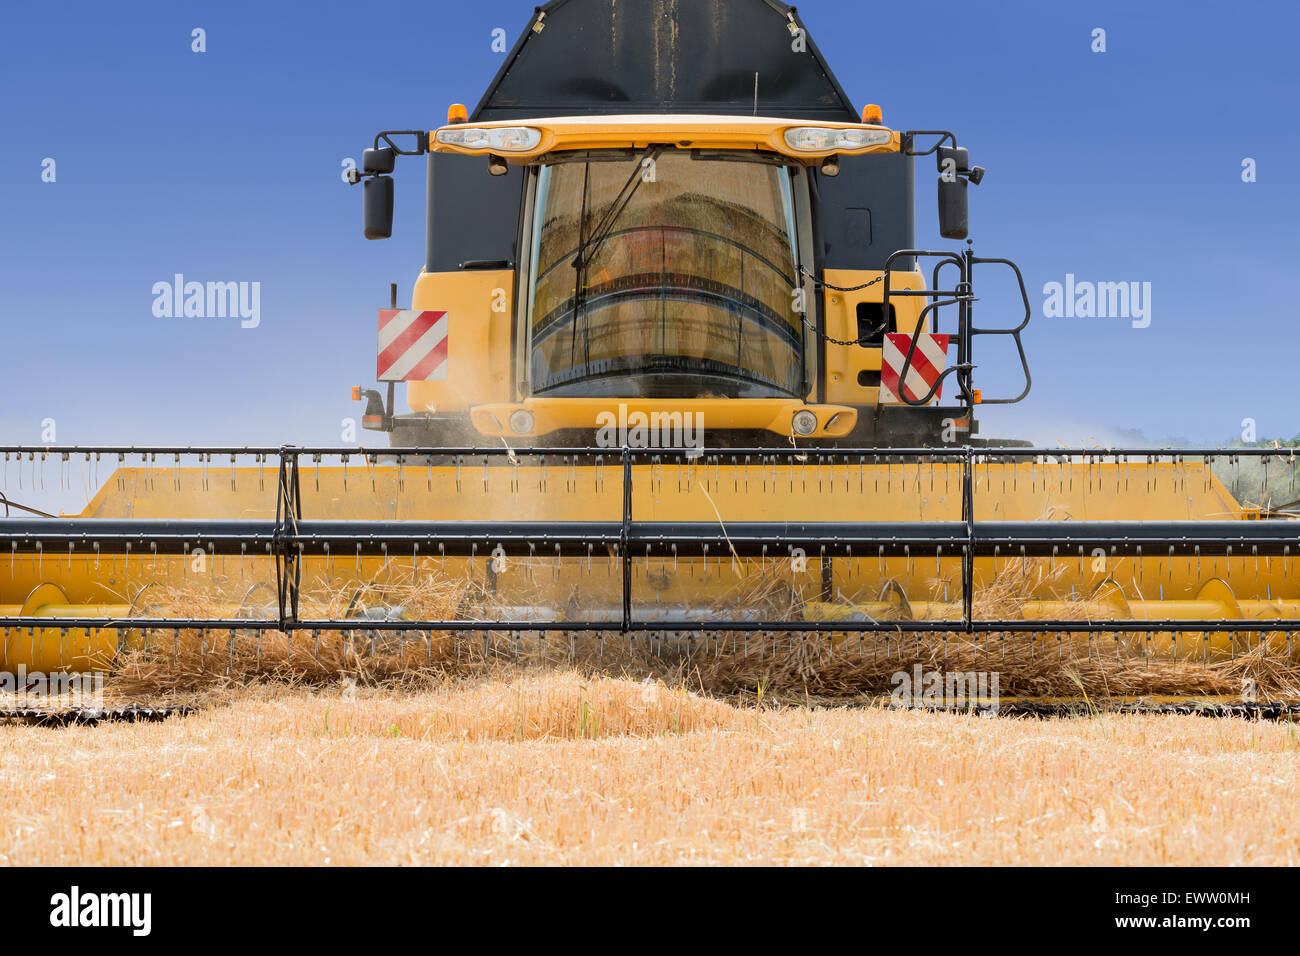 close front view of modern combine harvester in action. - Stock Image